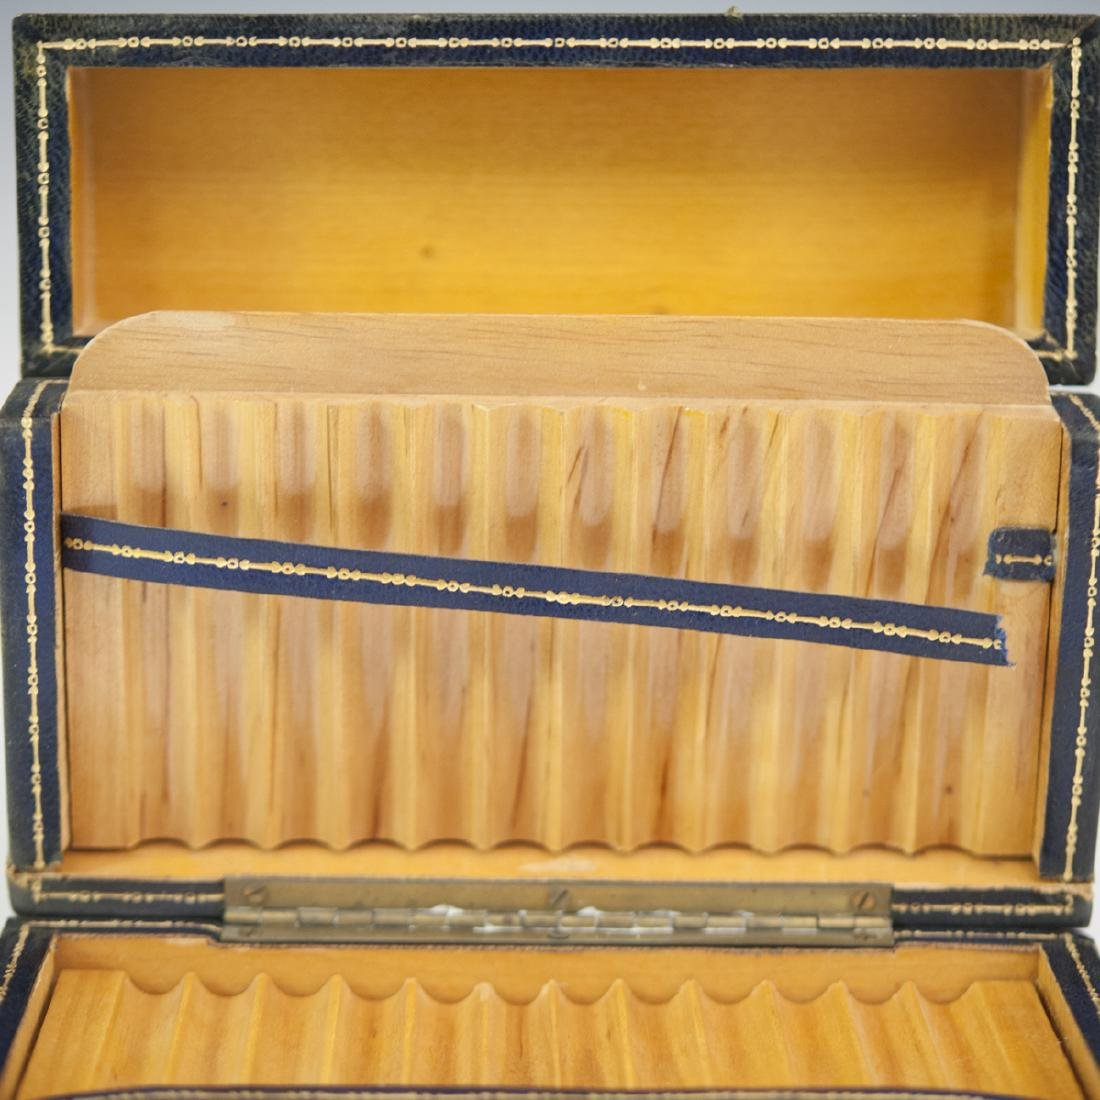 Leather Lined Wooden Cigarette Box - 3